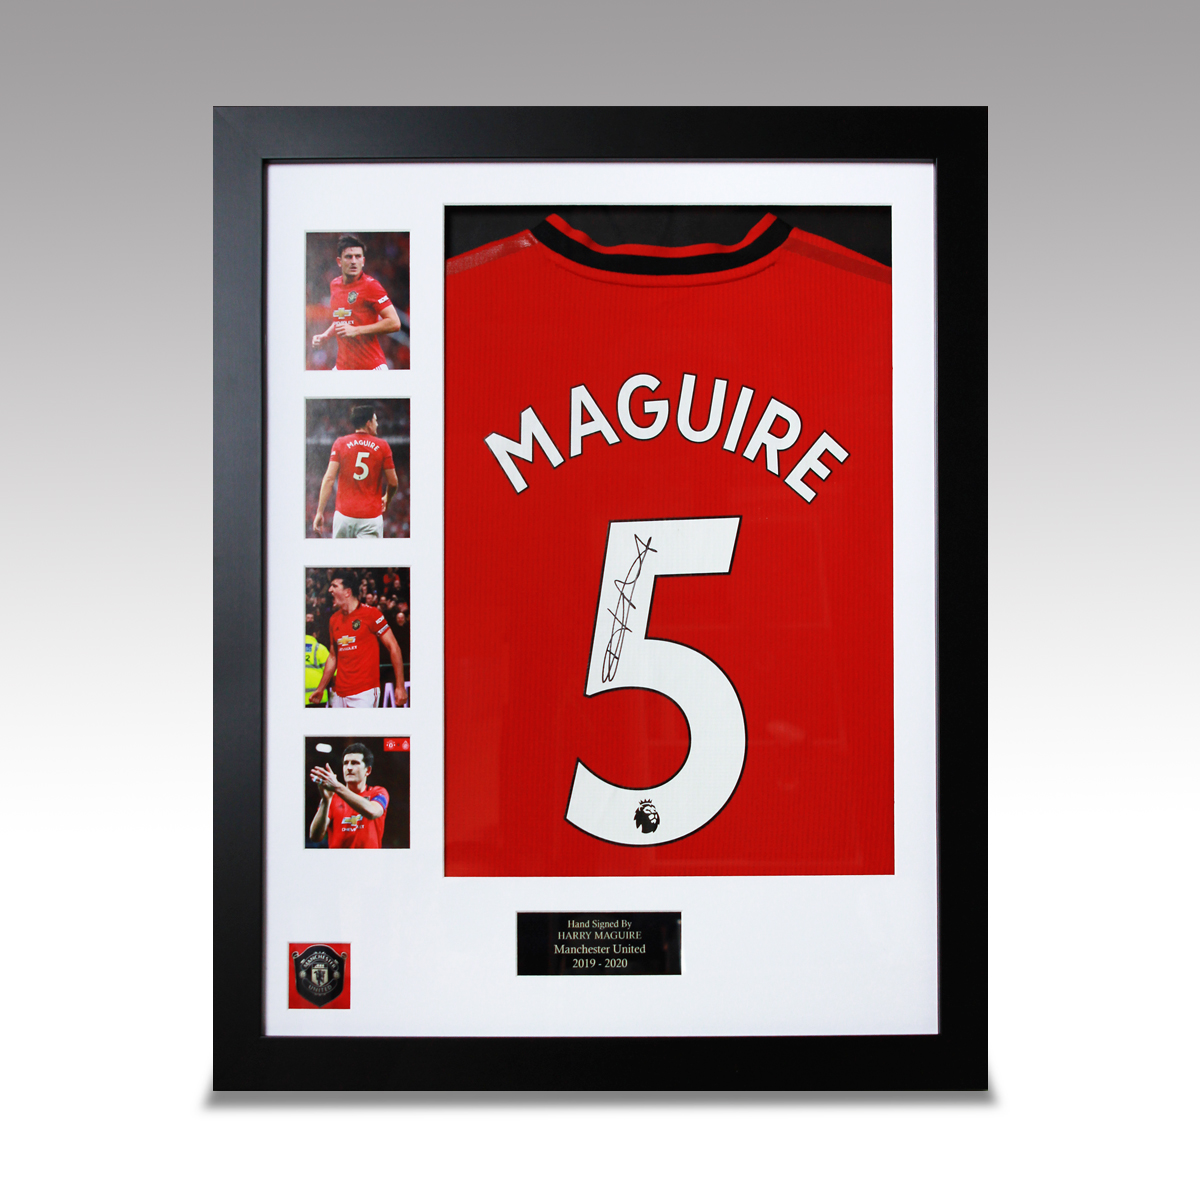 Maguire shirt frame